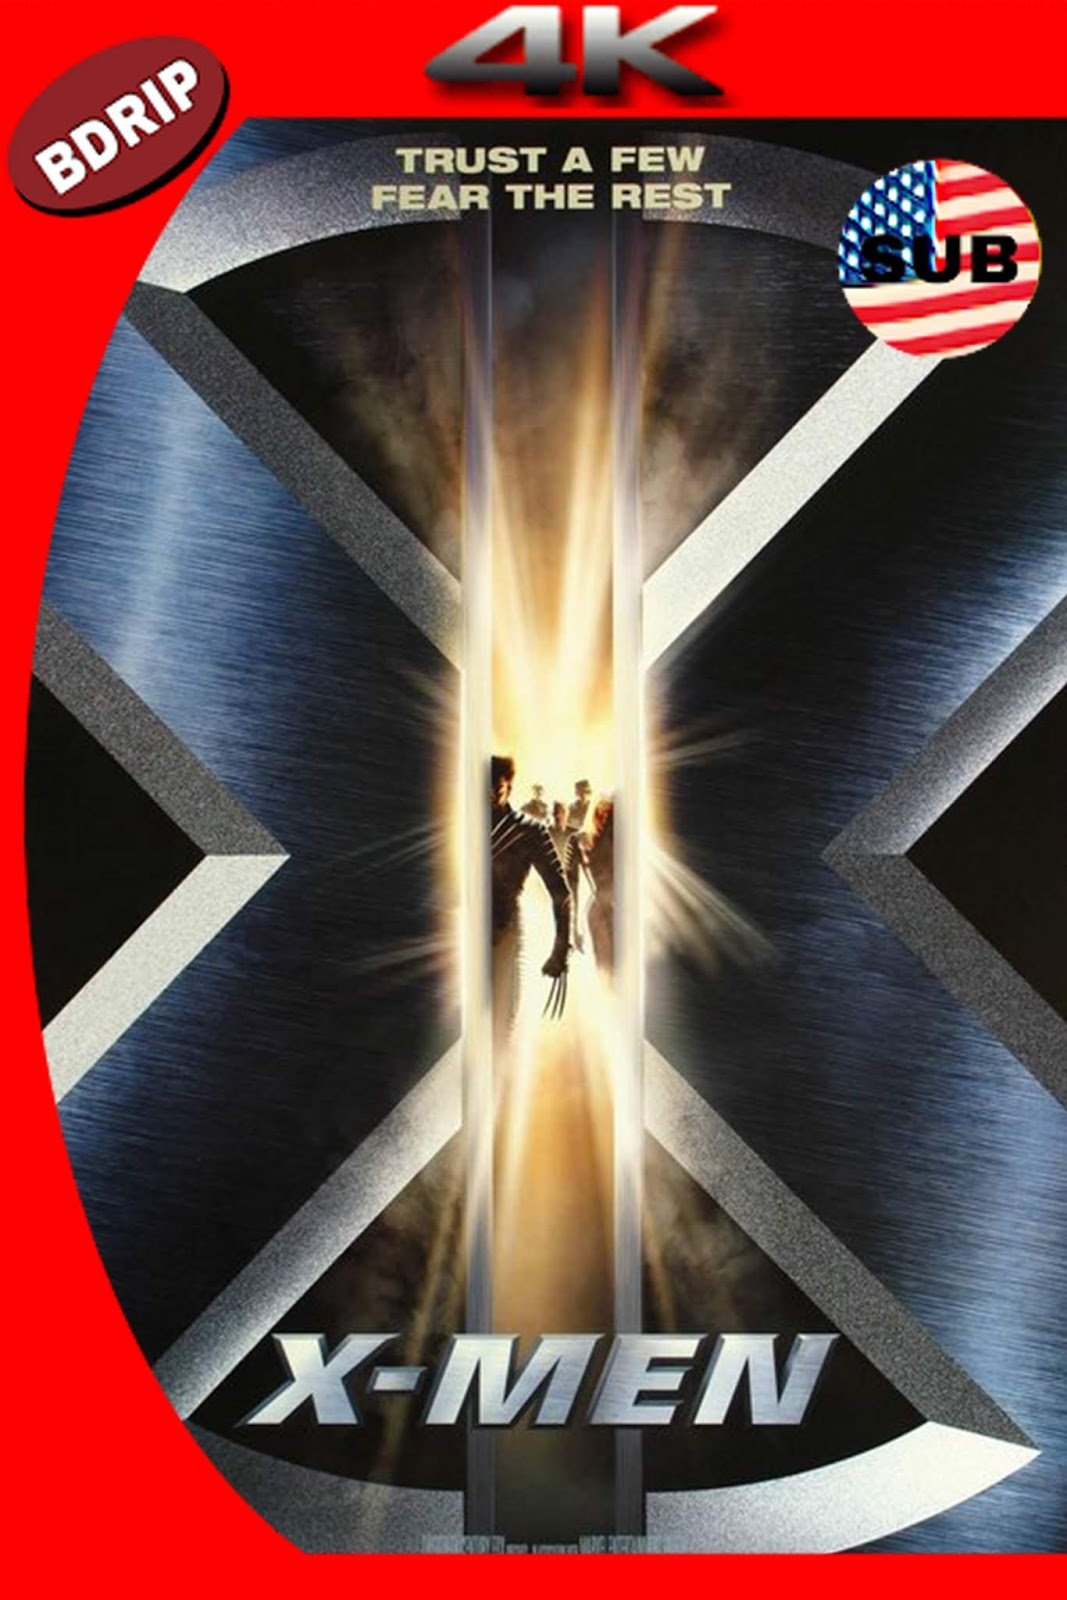 X-MEN 2000 BDRIP 4K 3840x1600P 23GB.mkv